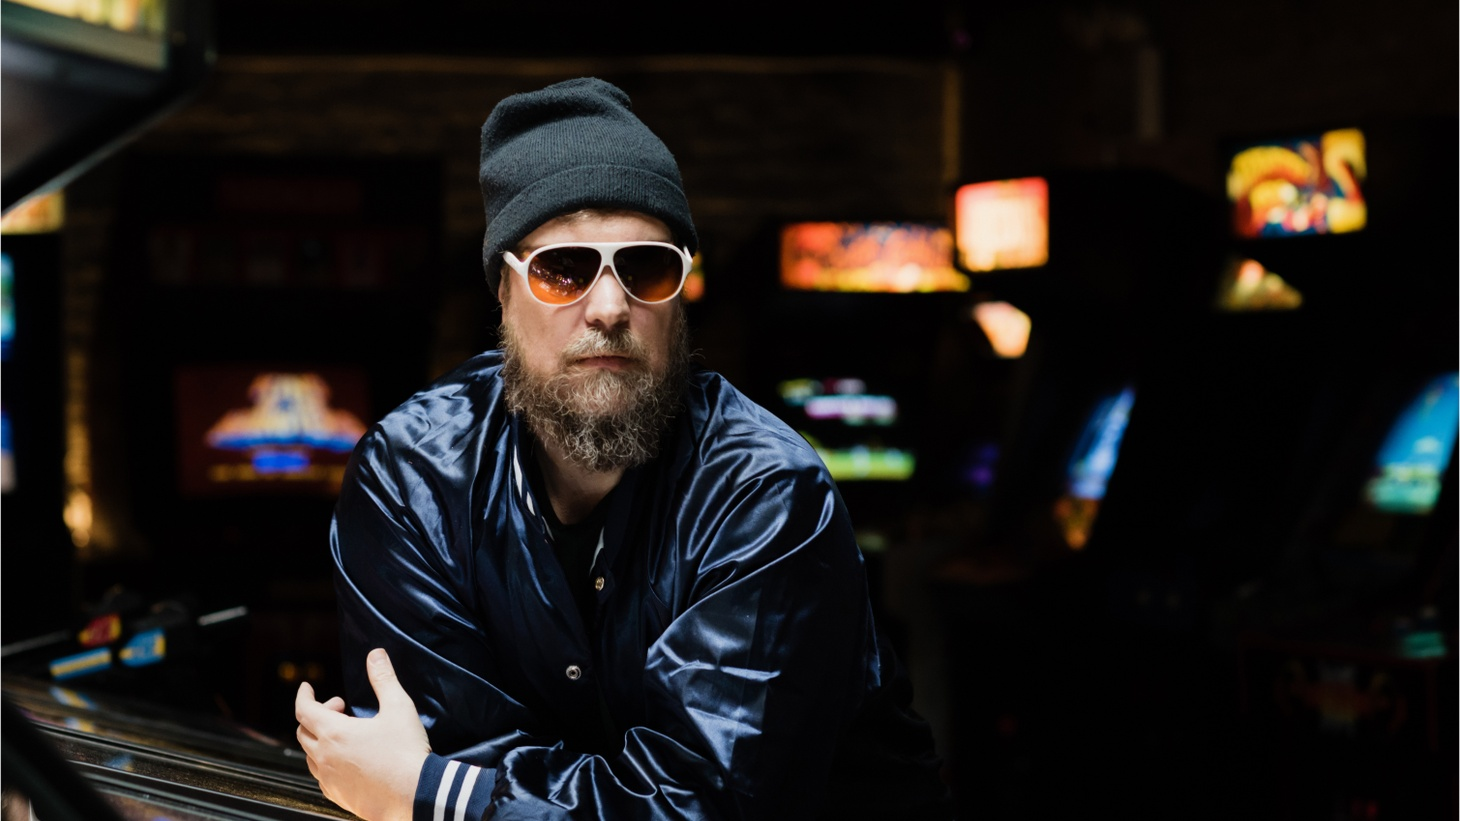 Electro-crooner John Grant snuck up on us this year with a fun track, that has a do  se  of Frank Zappa's humor and a bit of roller skate disco.